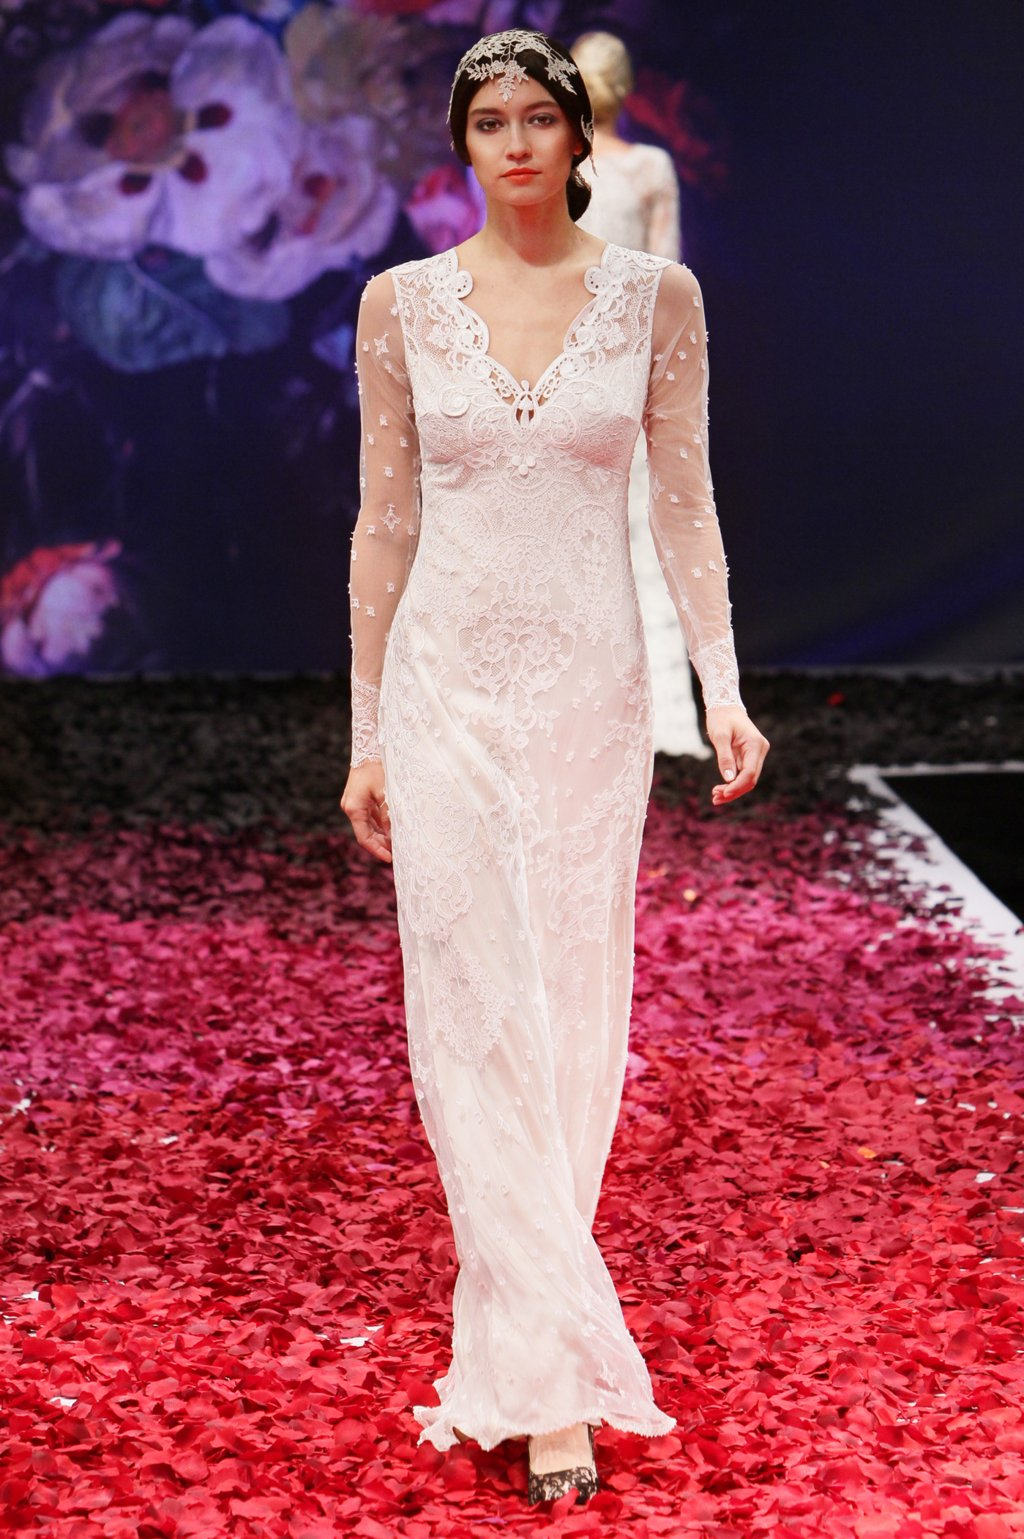 Lily-wedding-dress-by-claire-pettibone-2014-still-life-bridal-collection.full